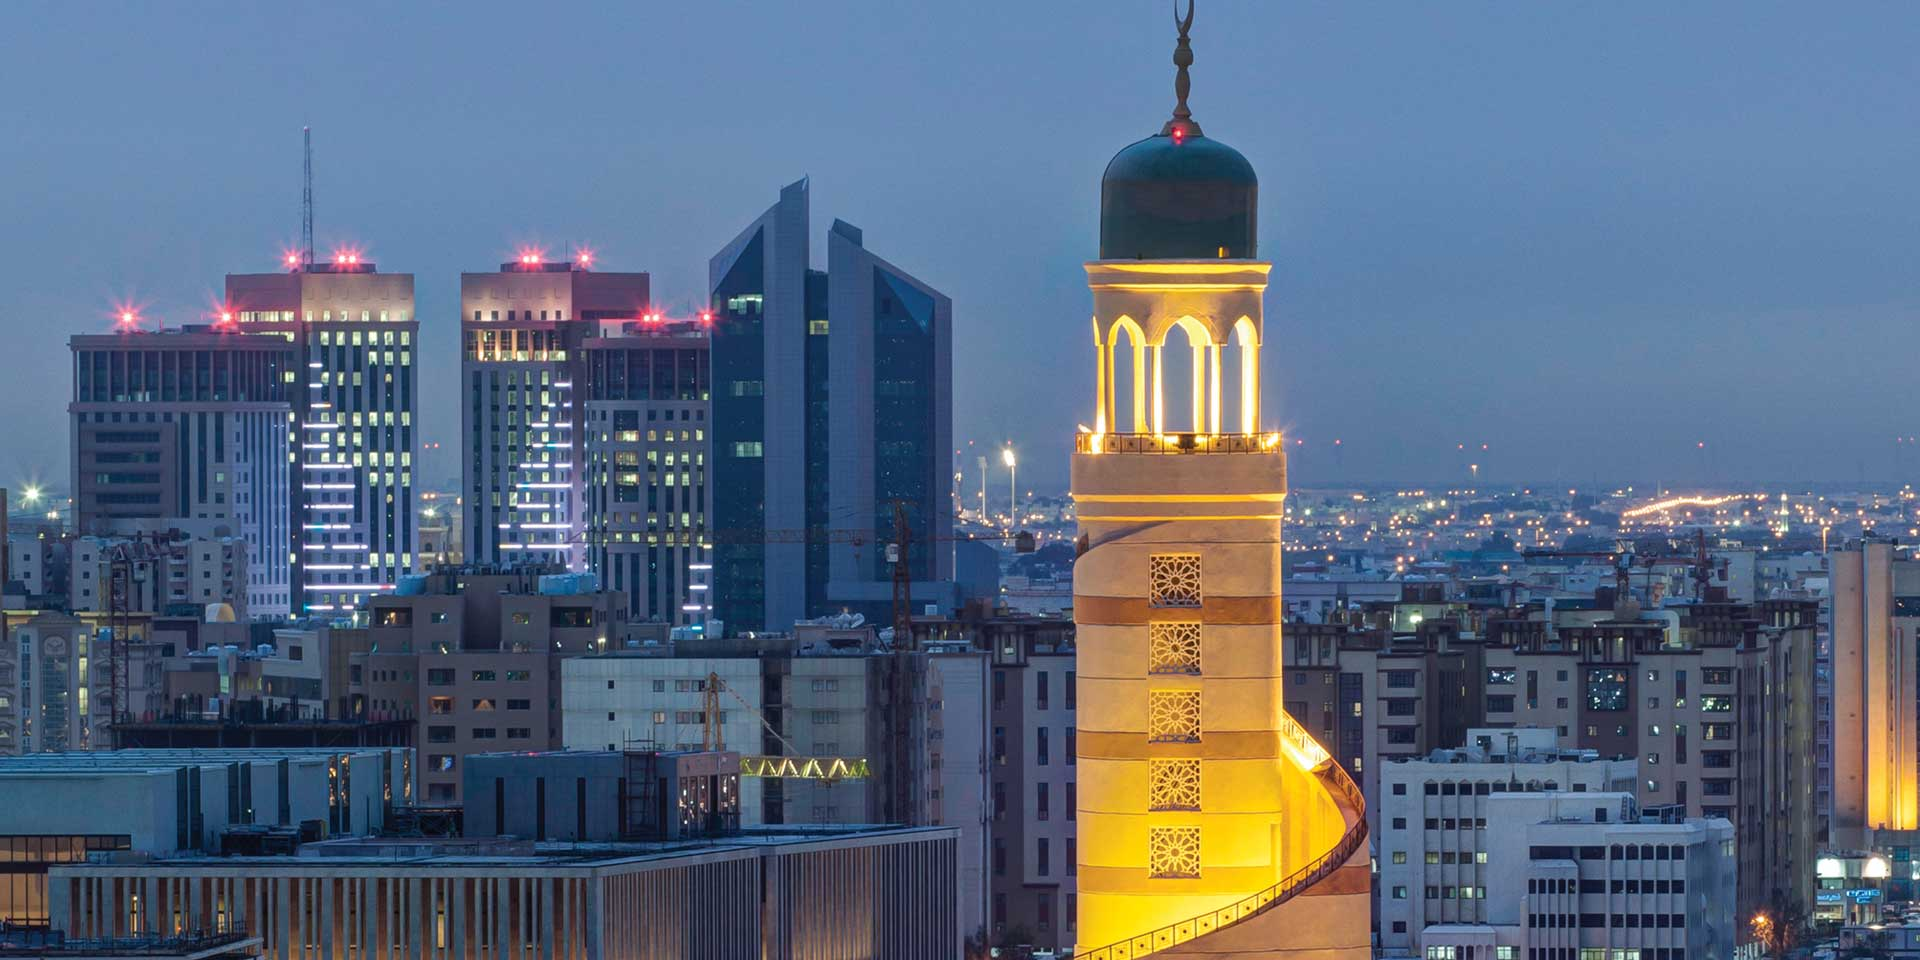 Doha White Amp Case Llp International Law Firm Global Law